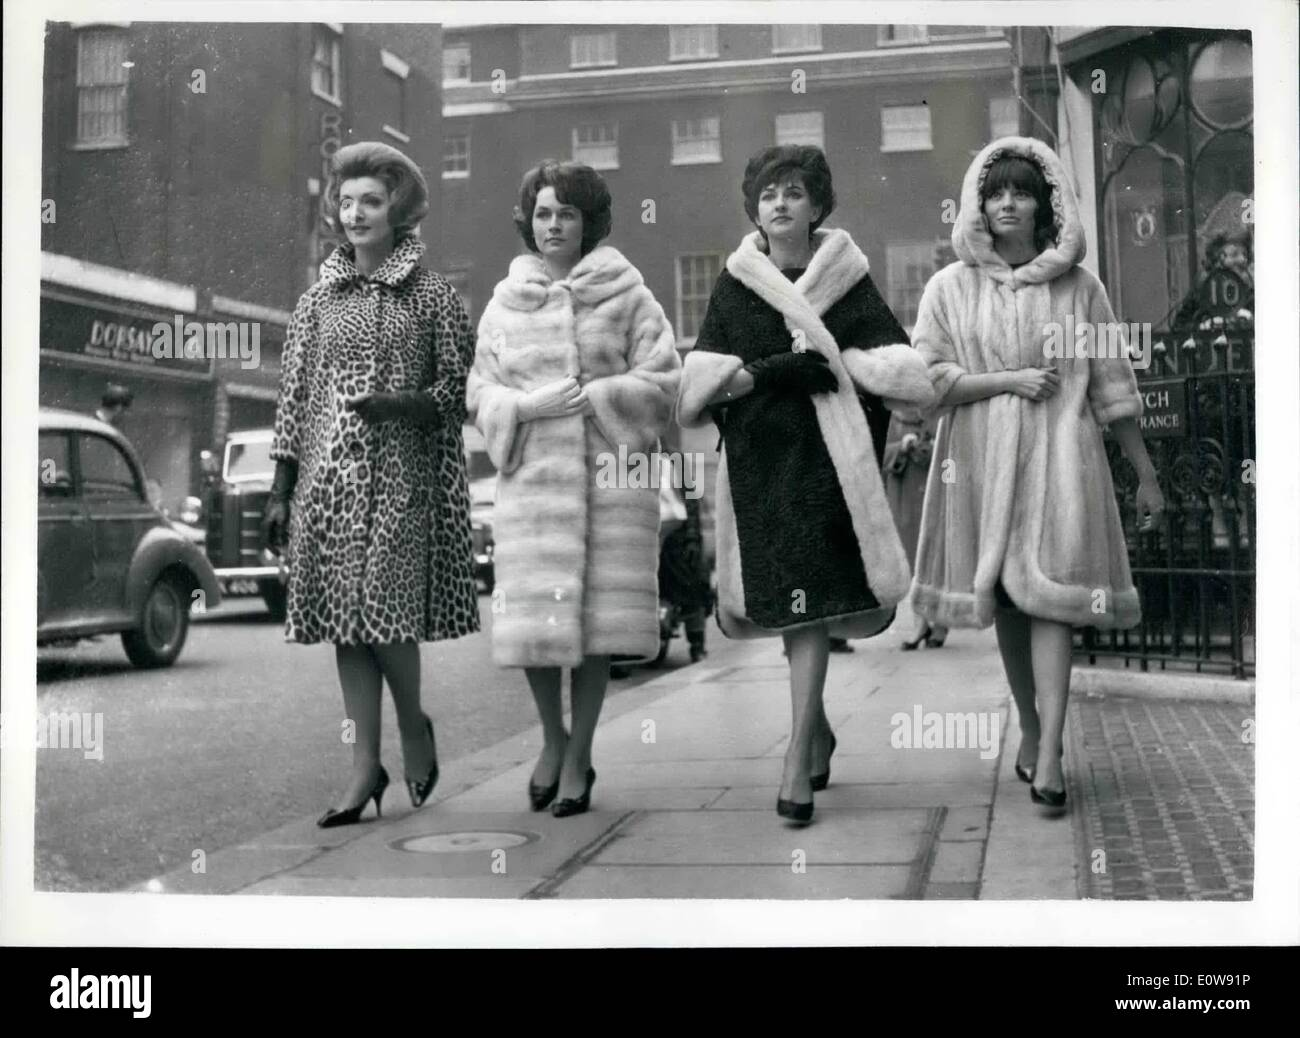 Feb. 02, 1962 - London Furs will be shown at Gala evening: Furs by ...